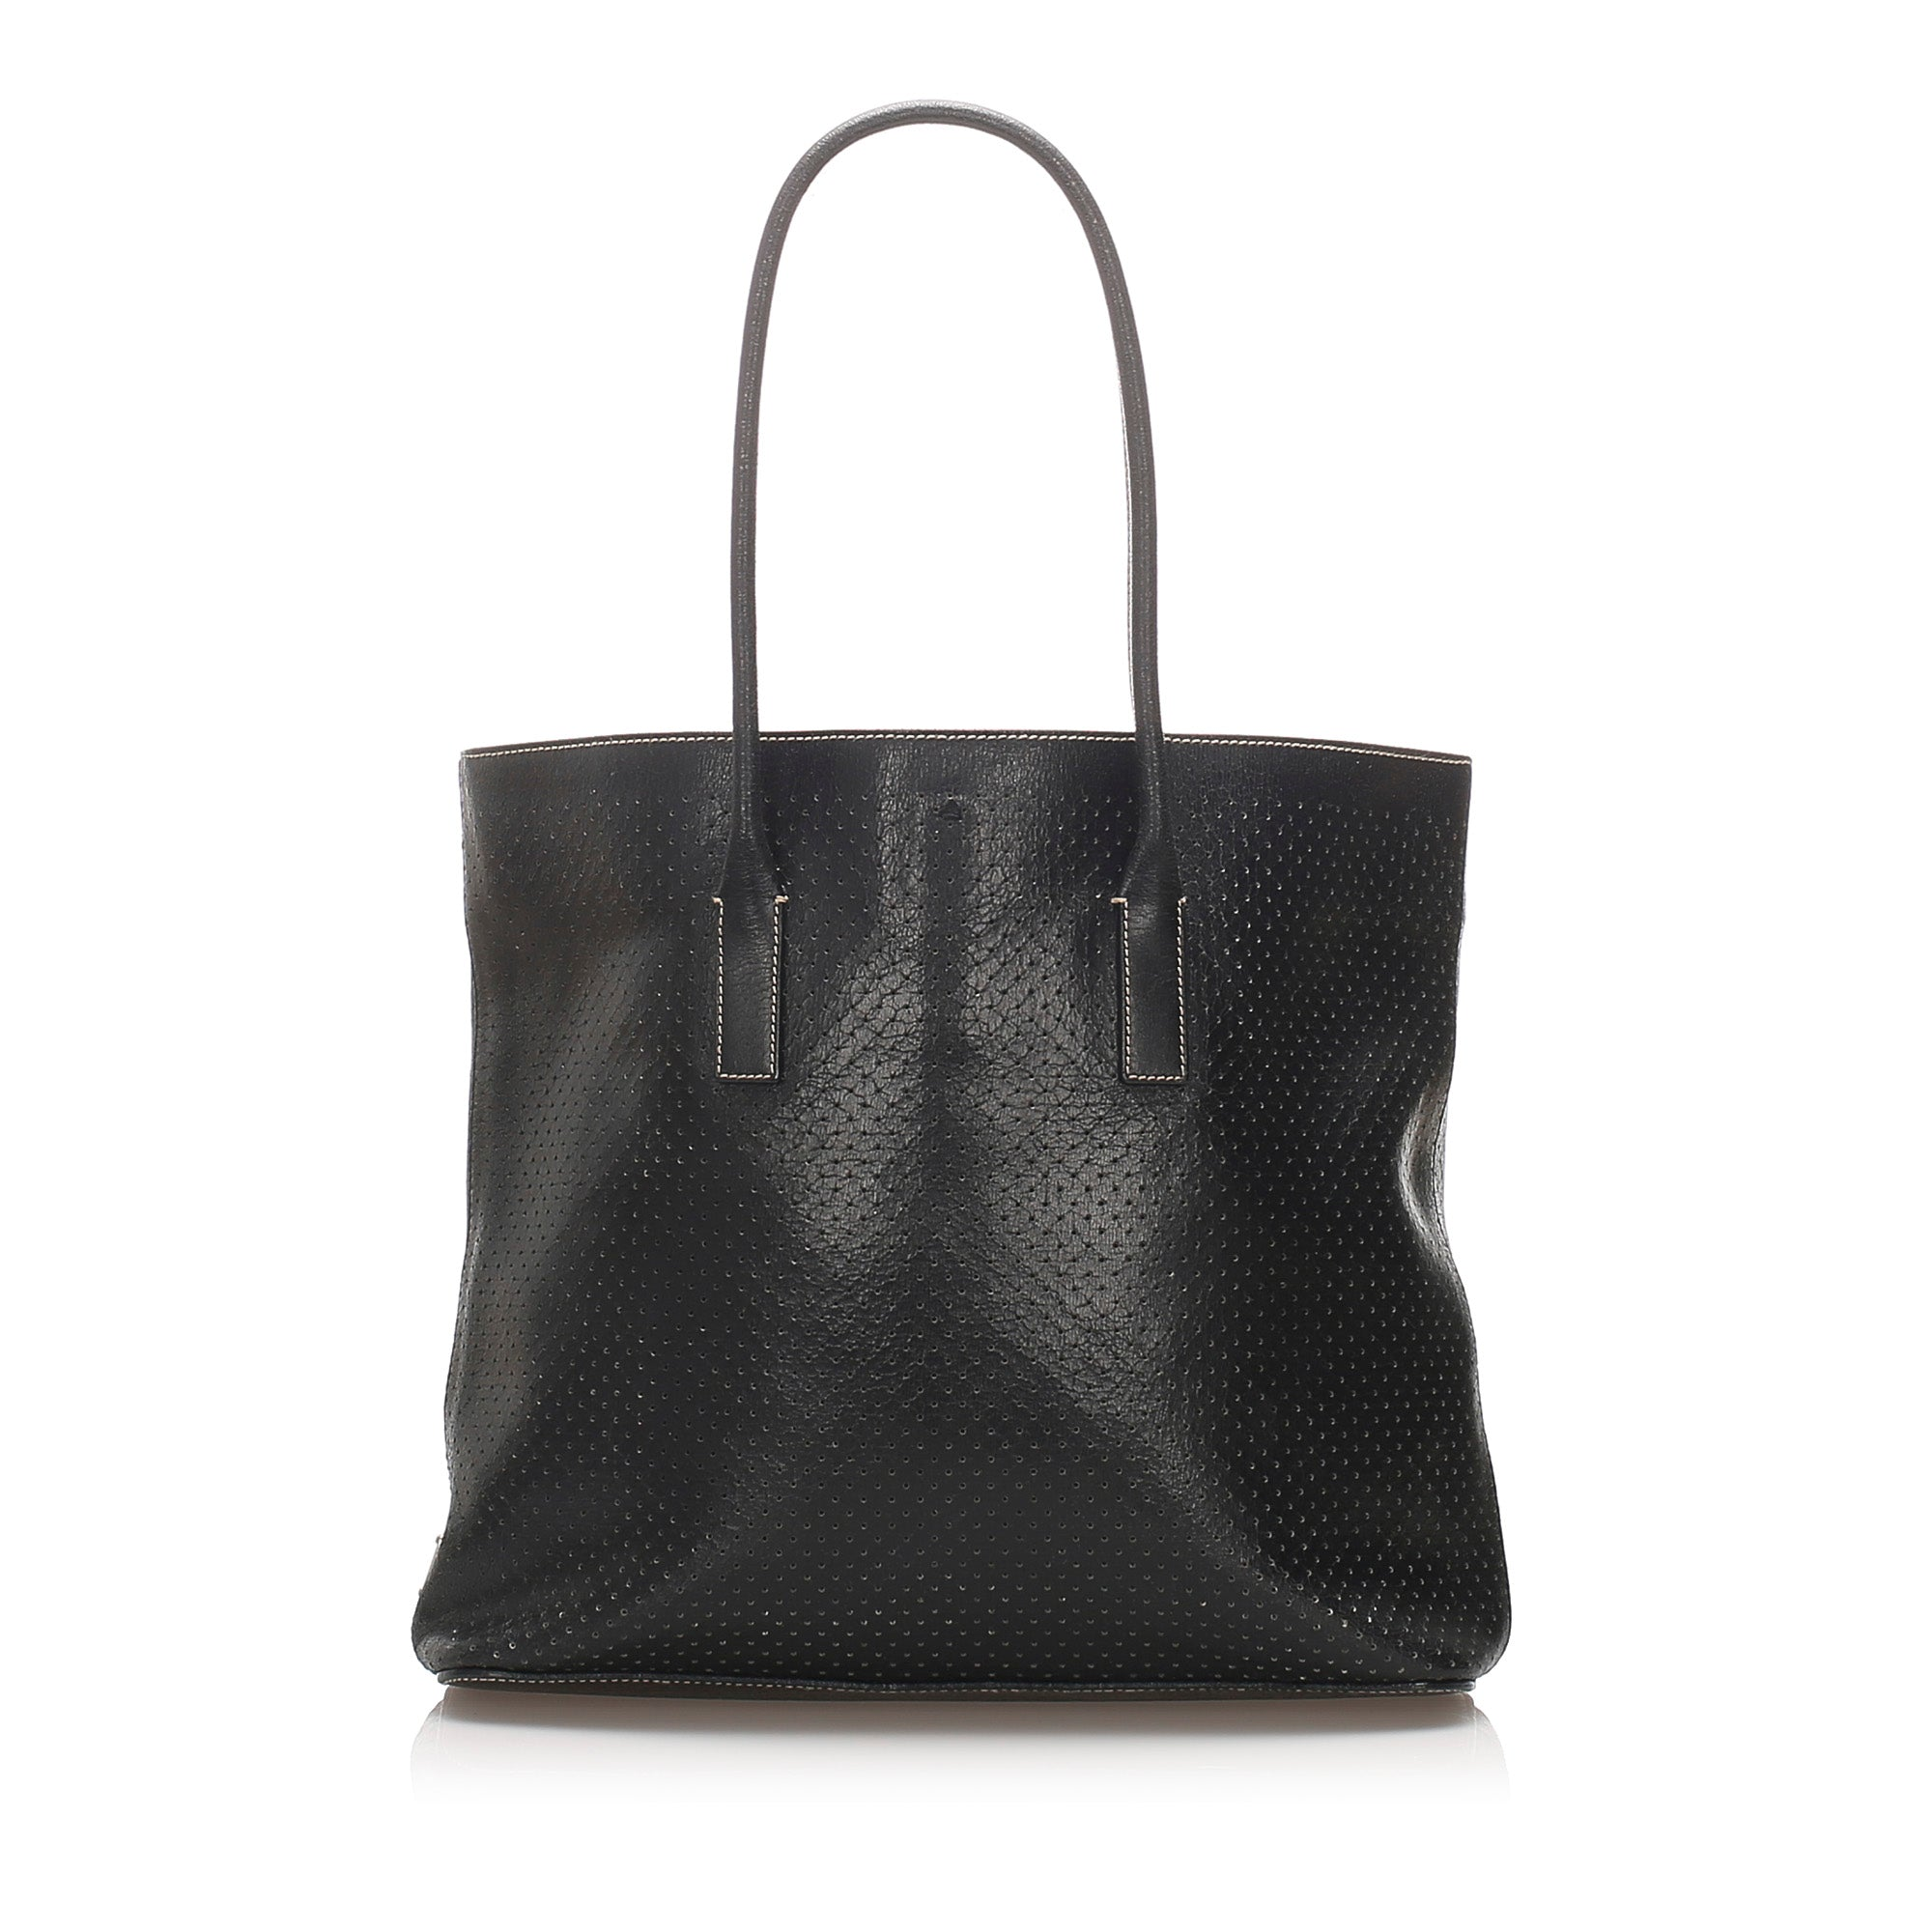 Prada Black Perforated Leather Tote Bag